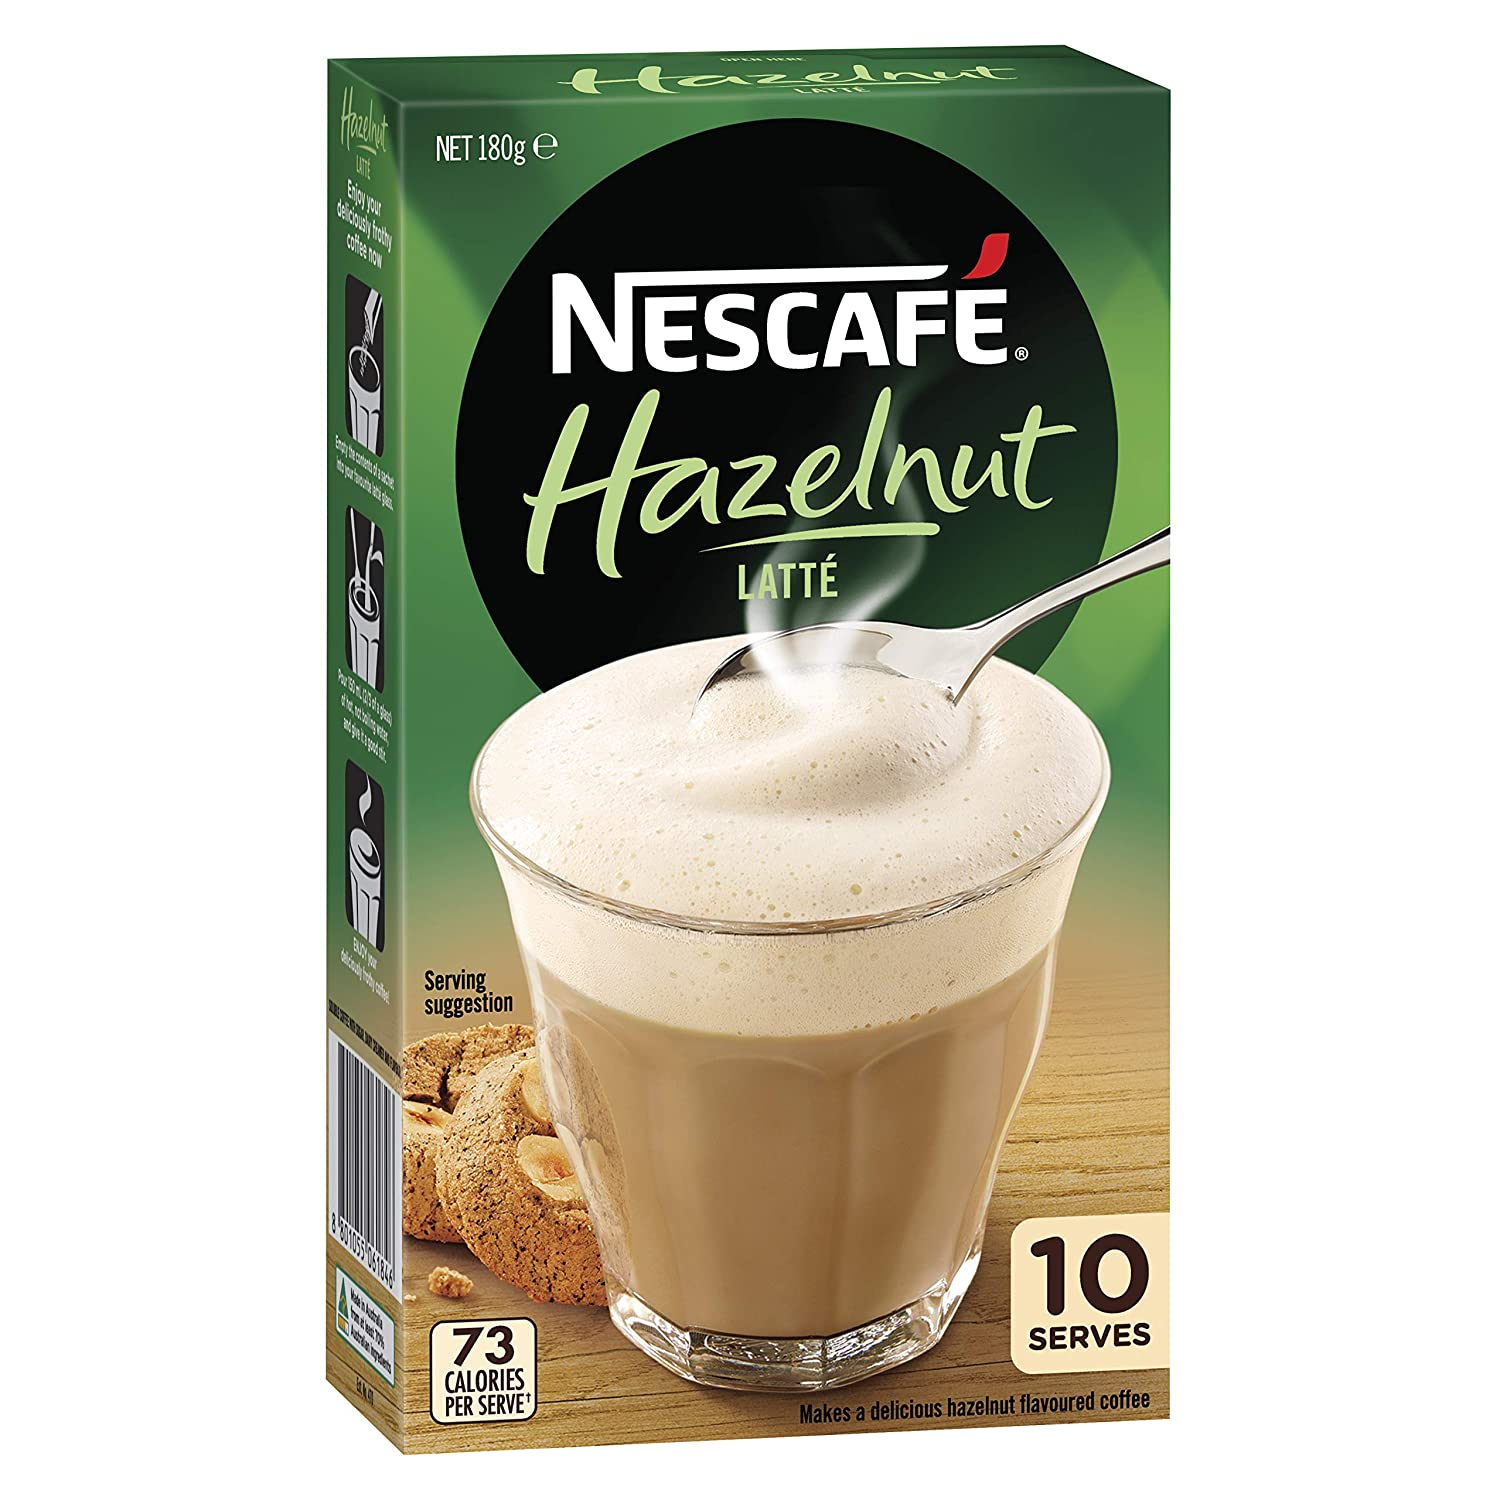 Image result for nescafe hazelnut latte